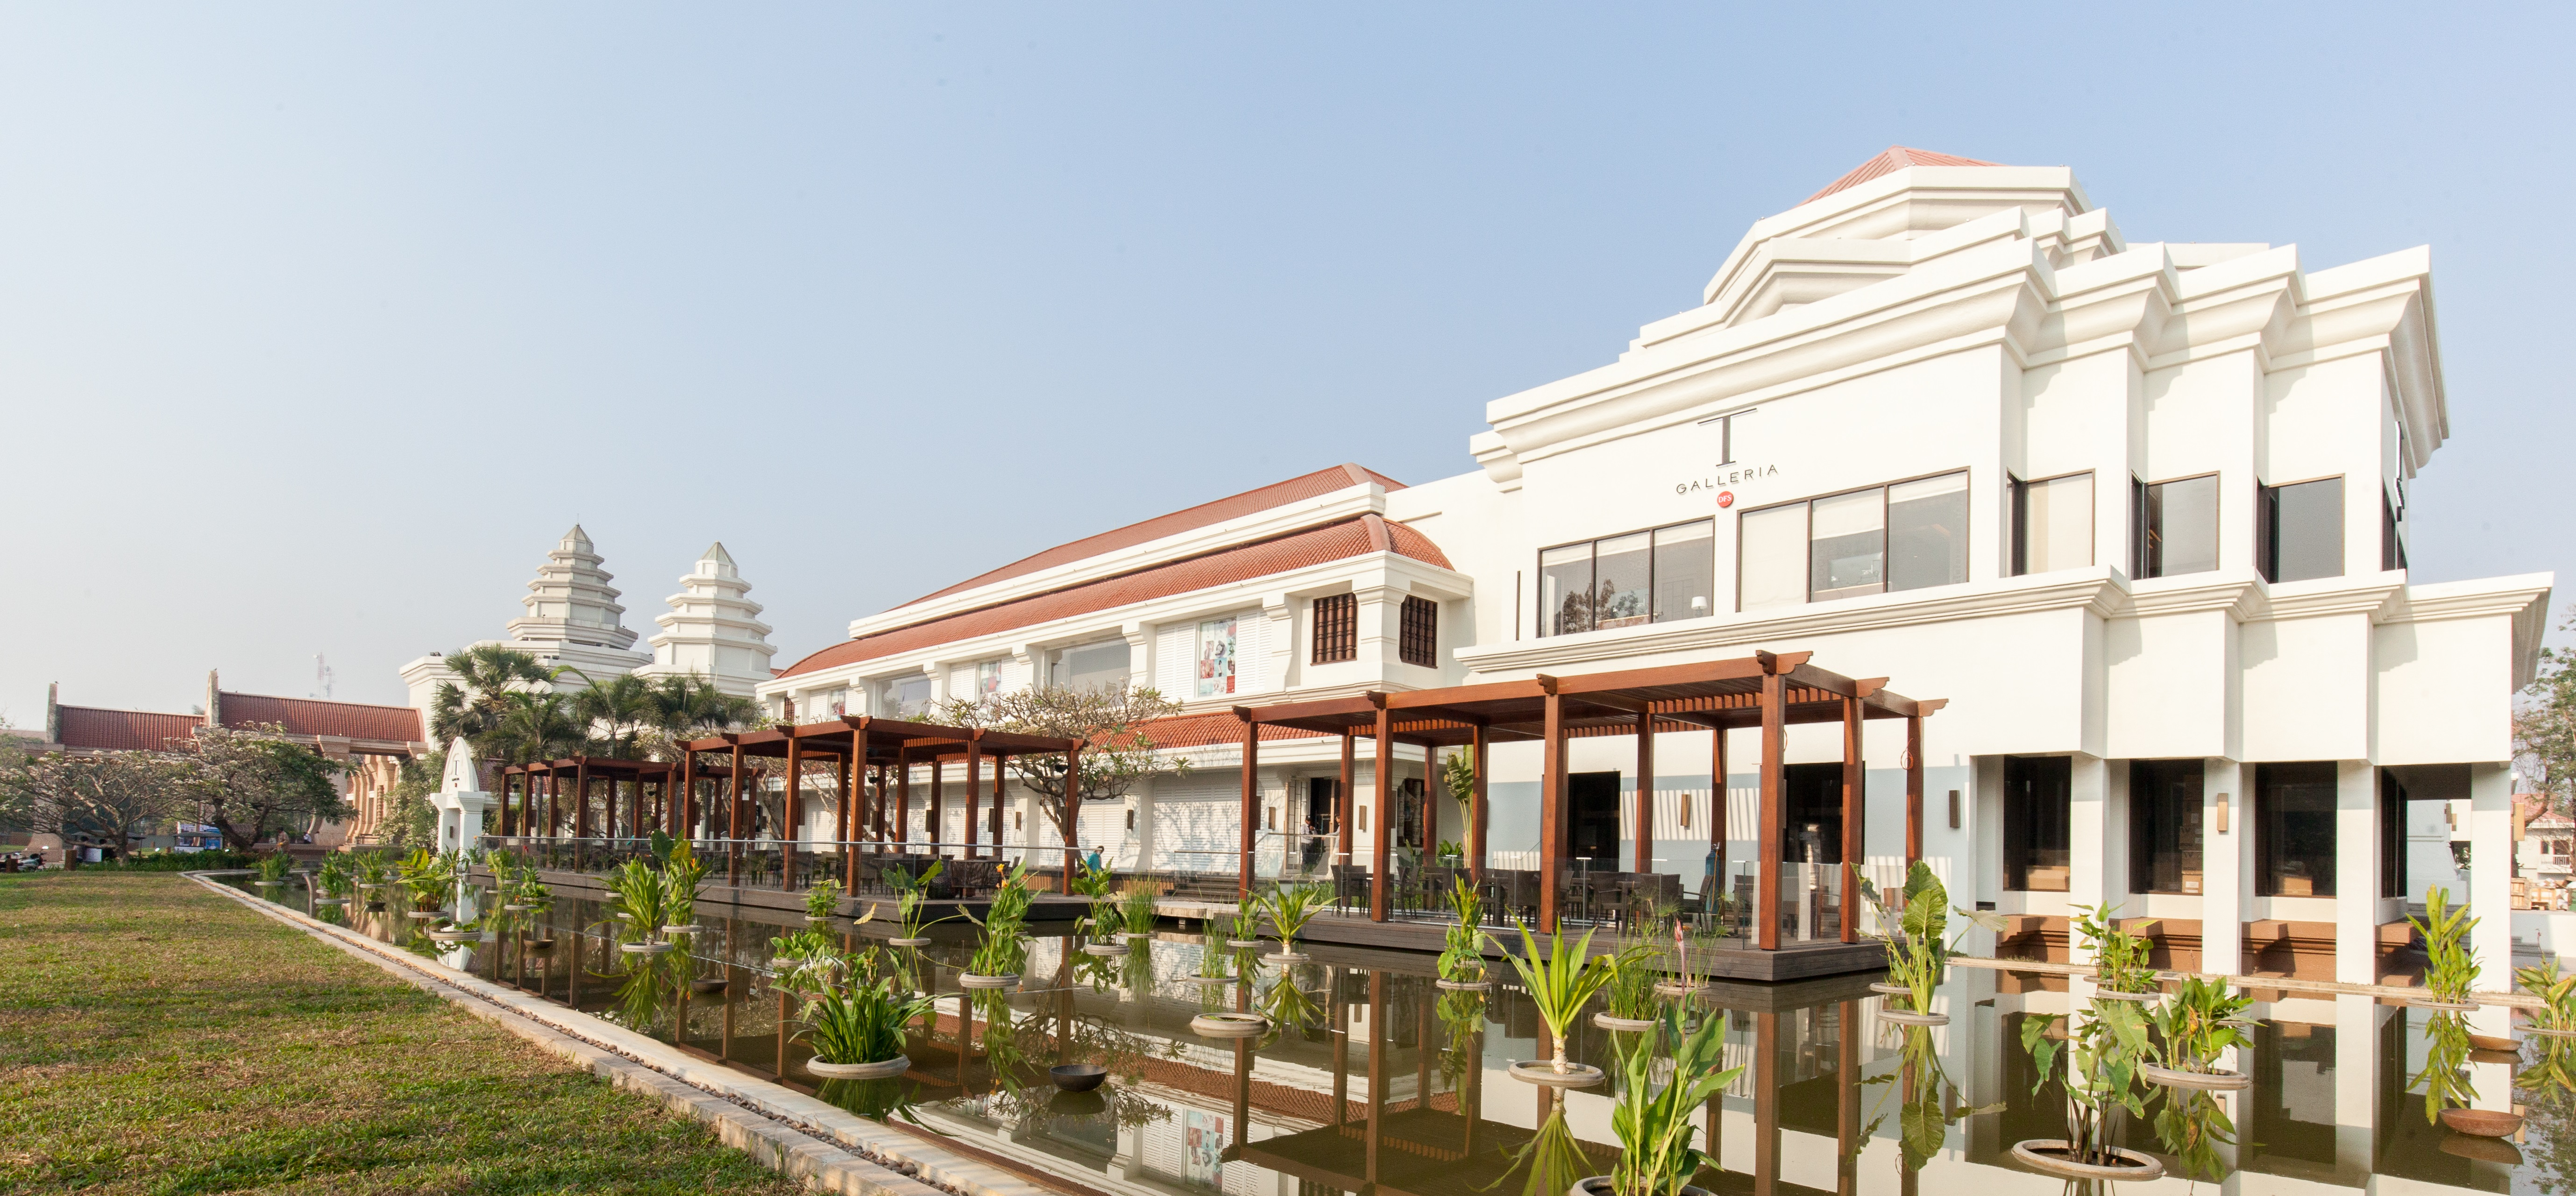 The T Galleria store in Siem Reap